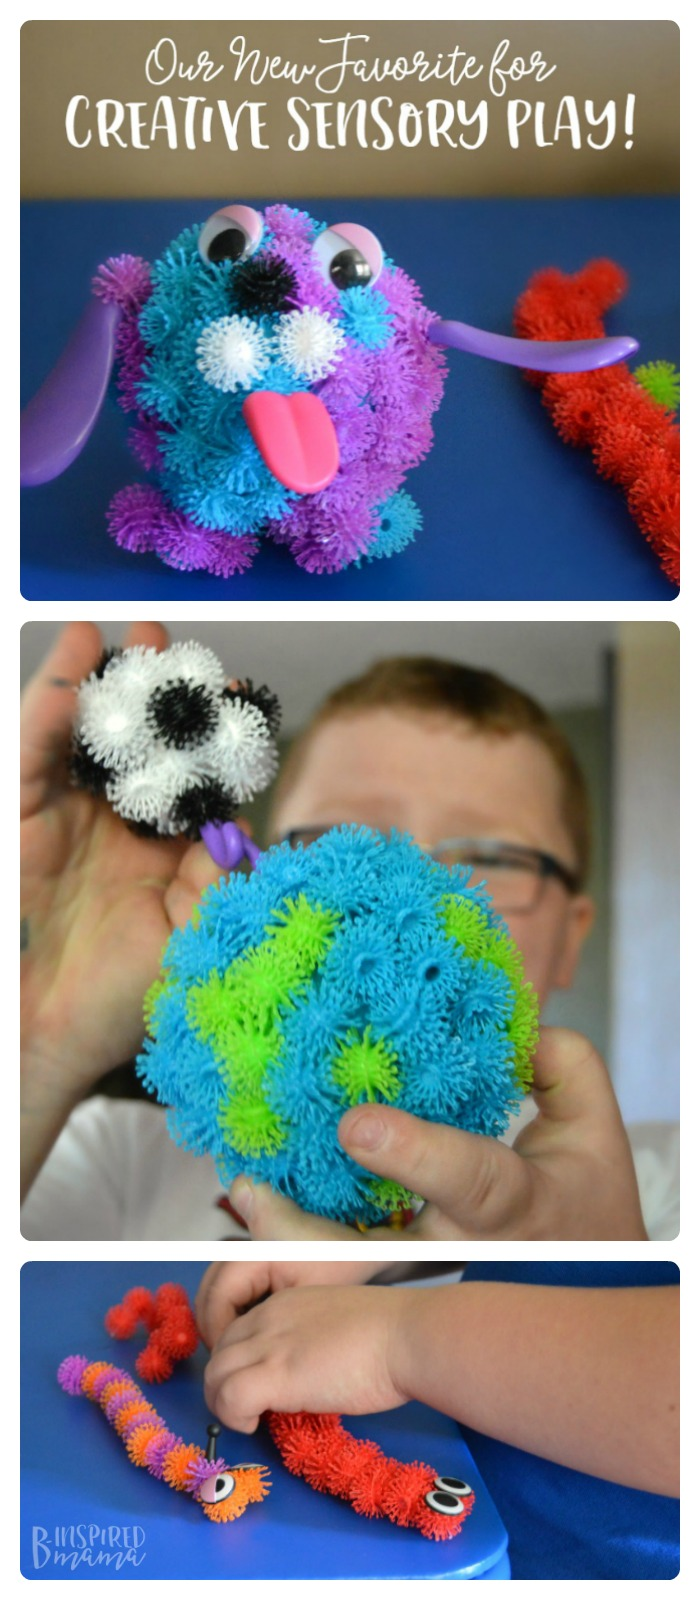 Check out our new tactile sensory favorite! Perfect for kids sensory play and creative kids sculpture projects, too. #kids #sensory #kidsactivities #sensoryactivities #sensoryplay #play #playmatters #kbn #binspiredmama #toys